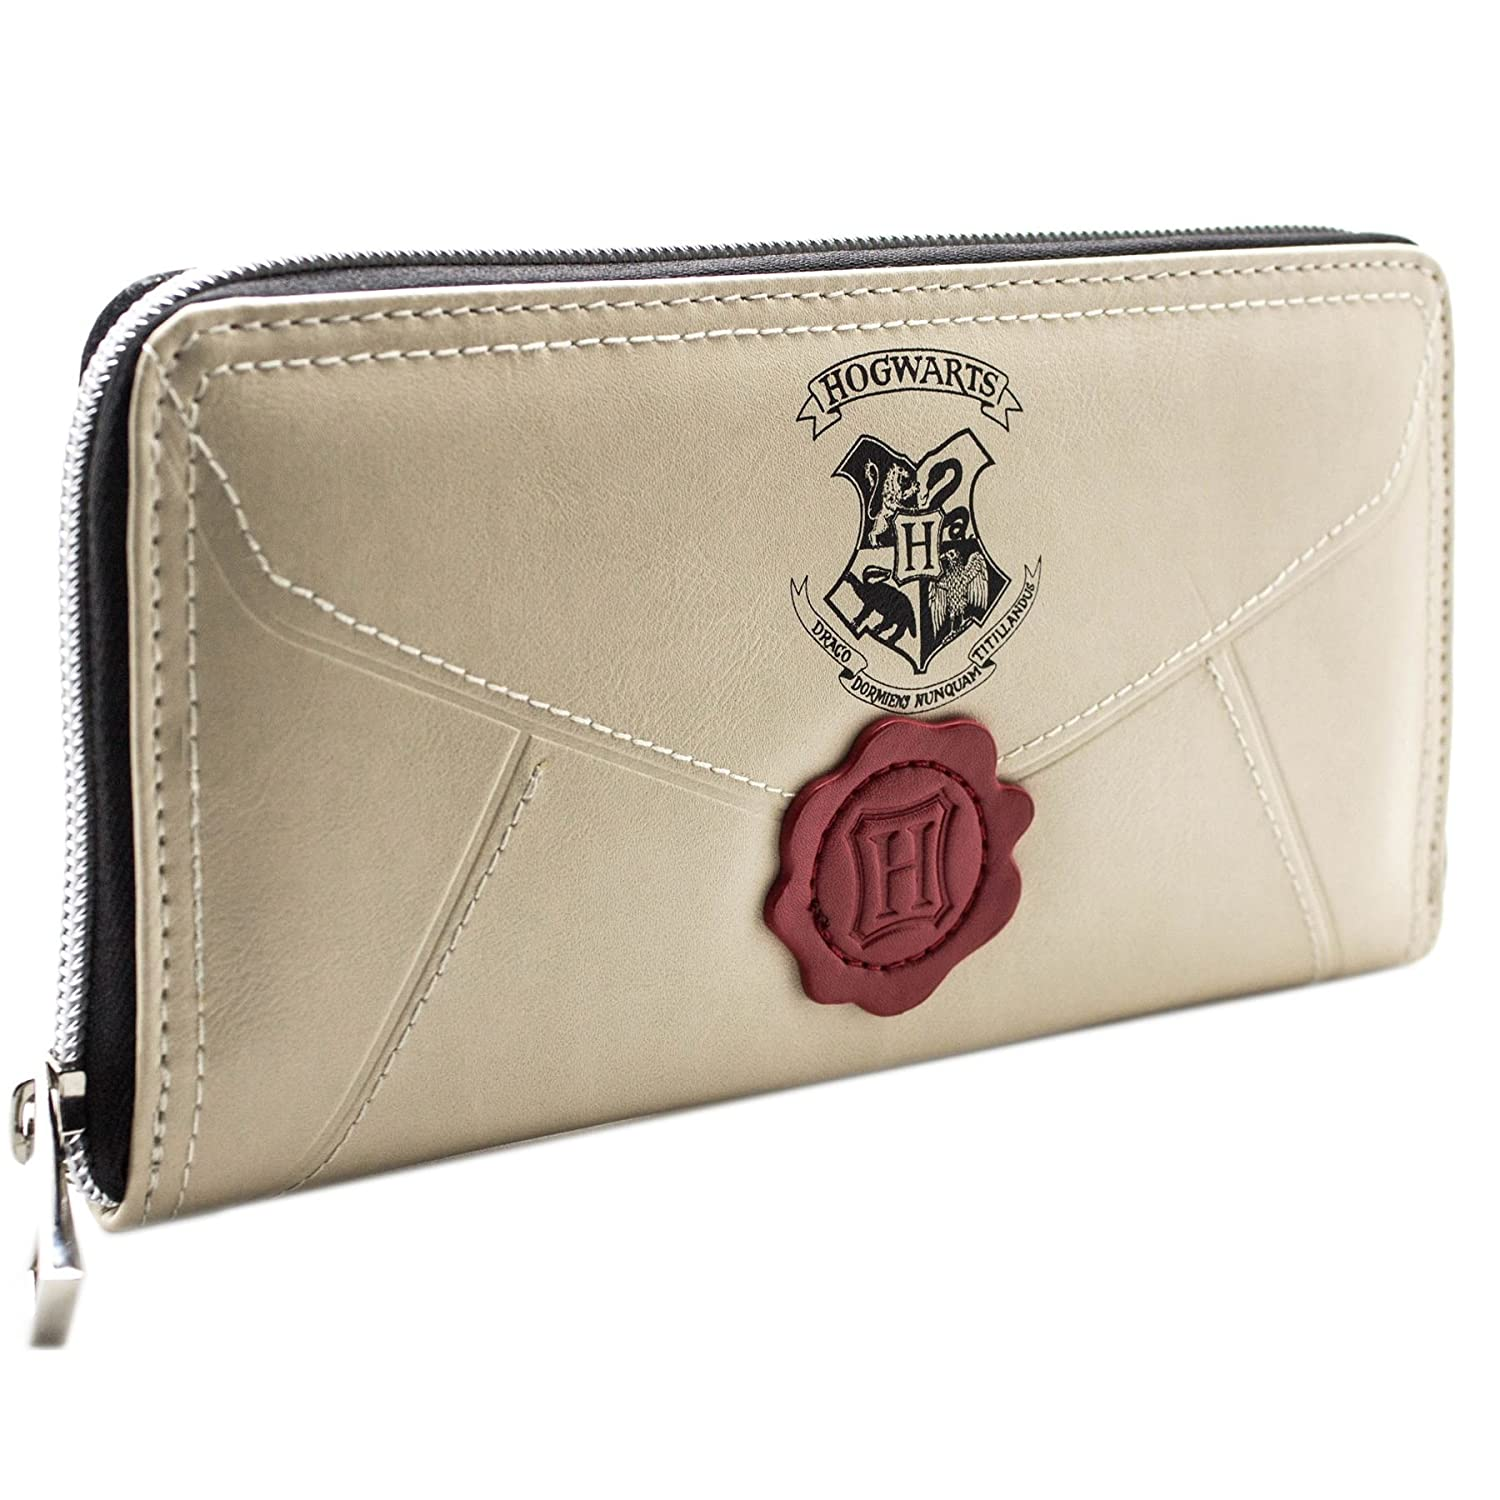 Cartera de Harry Potter Letter Crema 29465